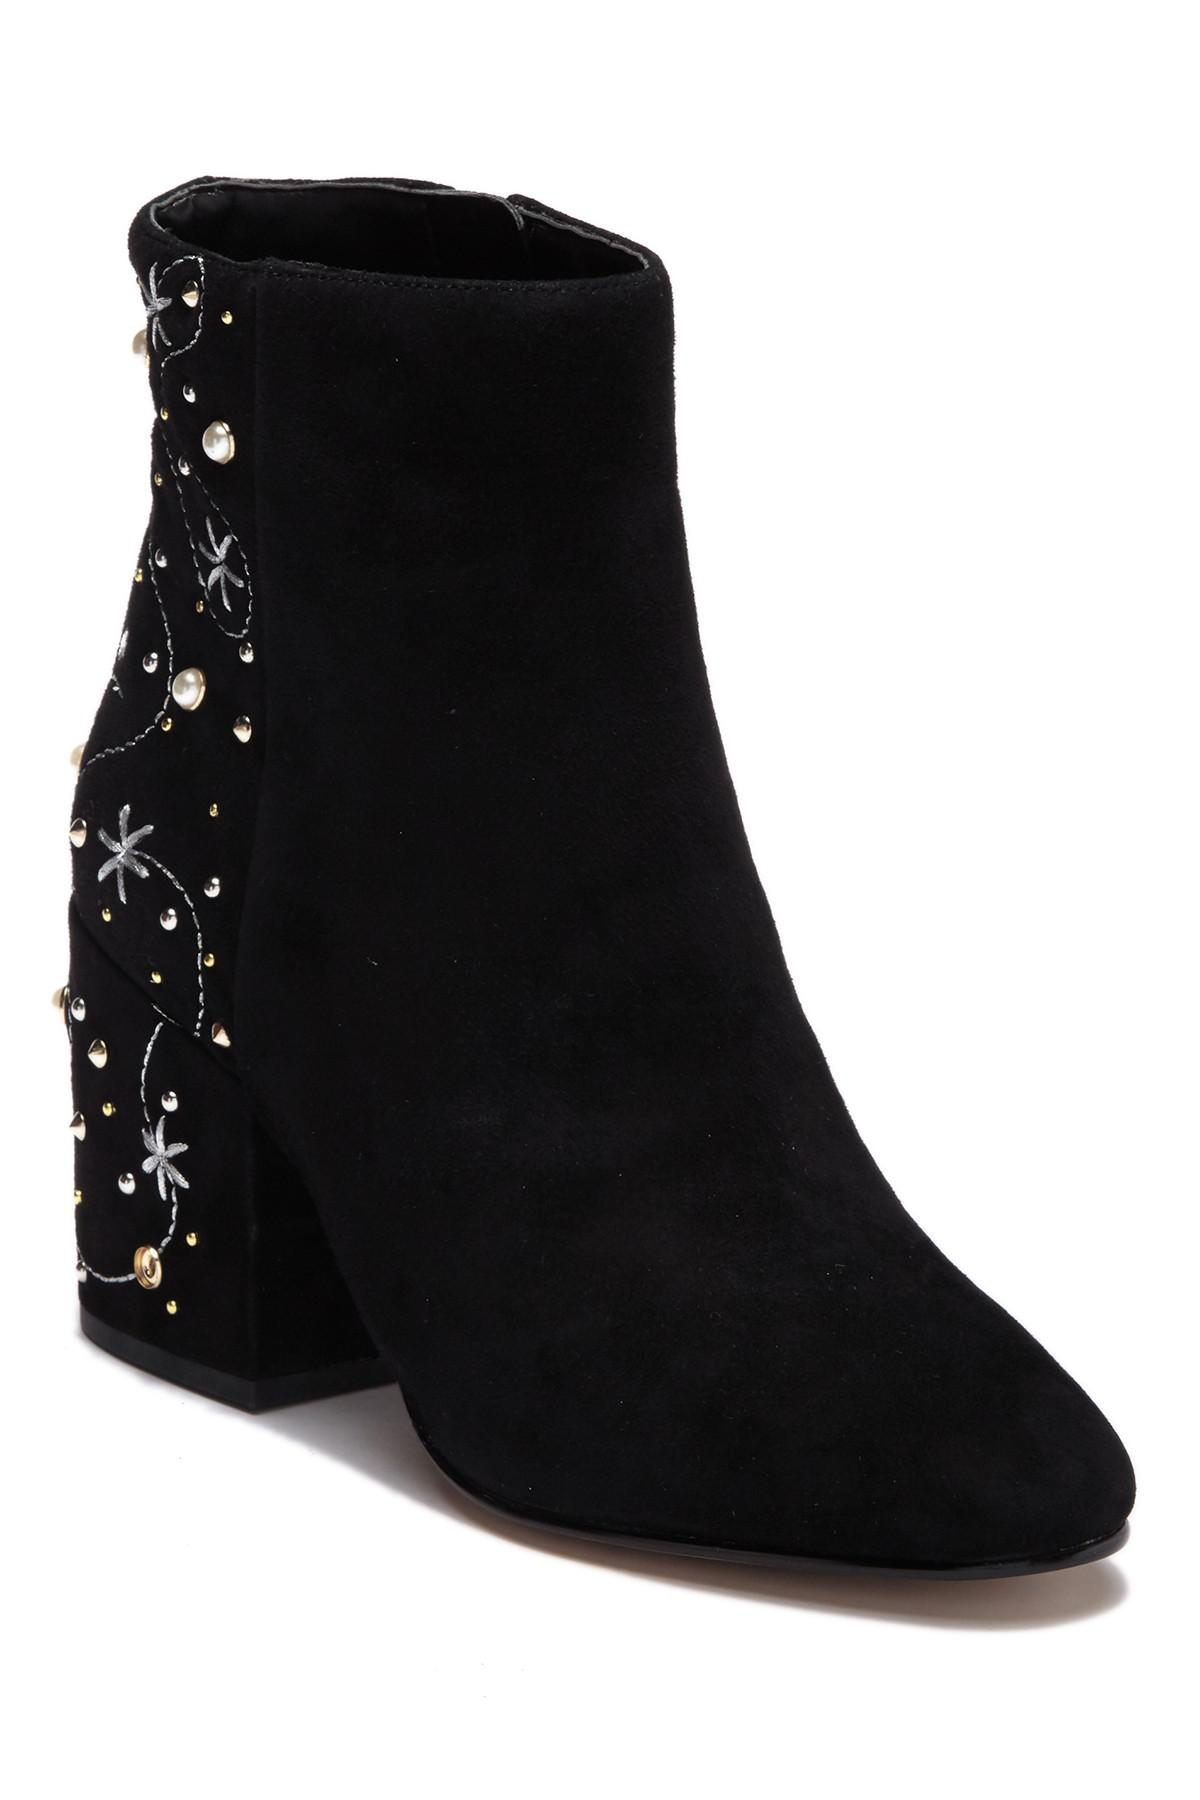 11a5c40708cb72 Lyst - Sam Edelman Taft Embroidered Faux Pearl Stud Boot in Black ...